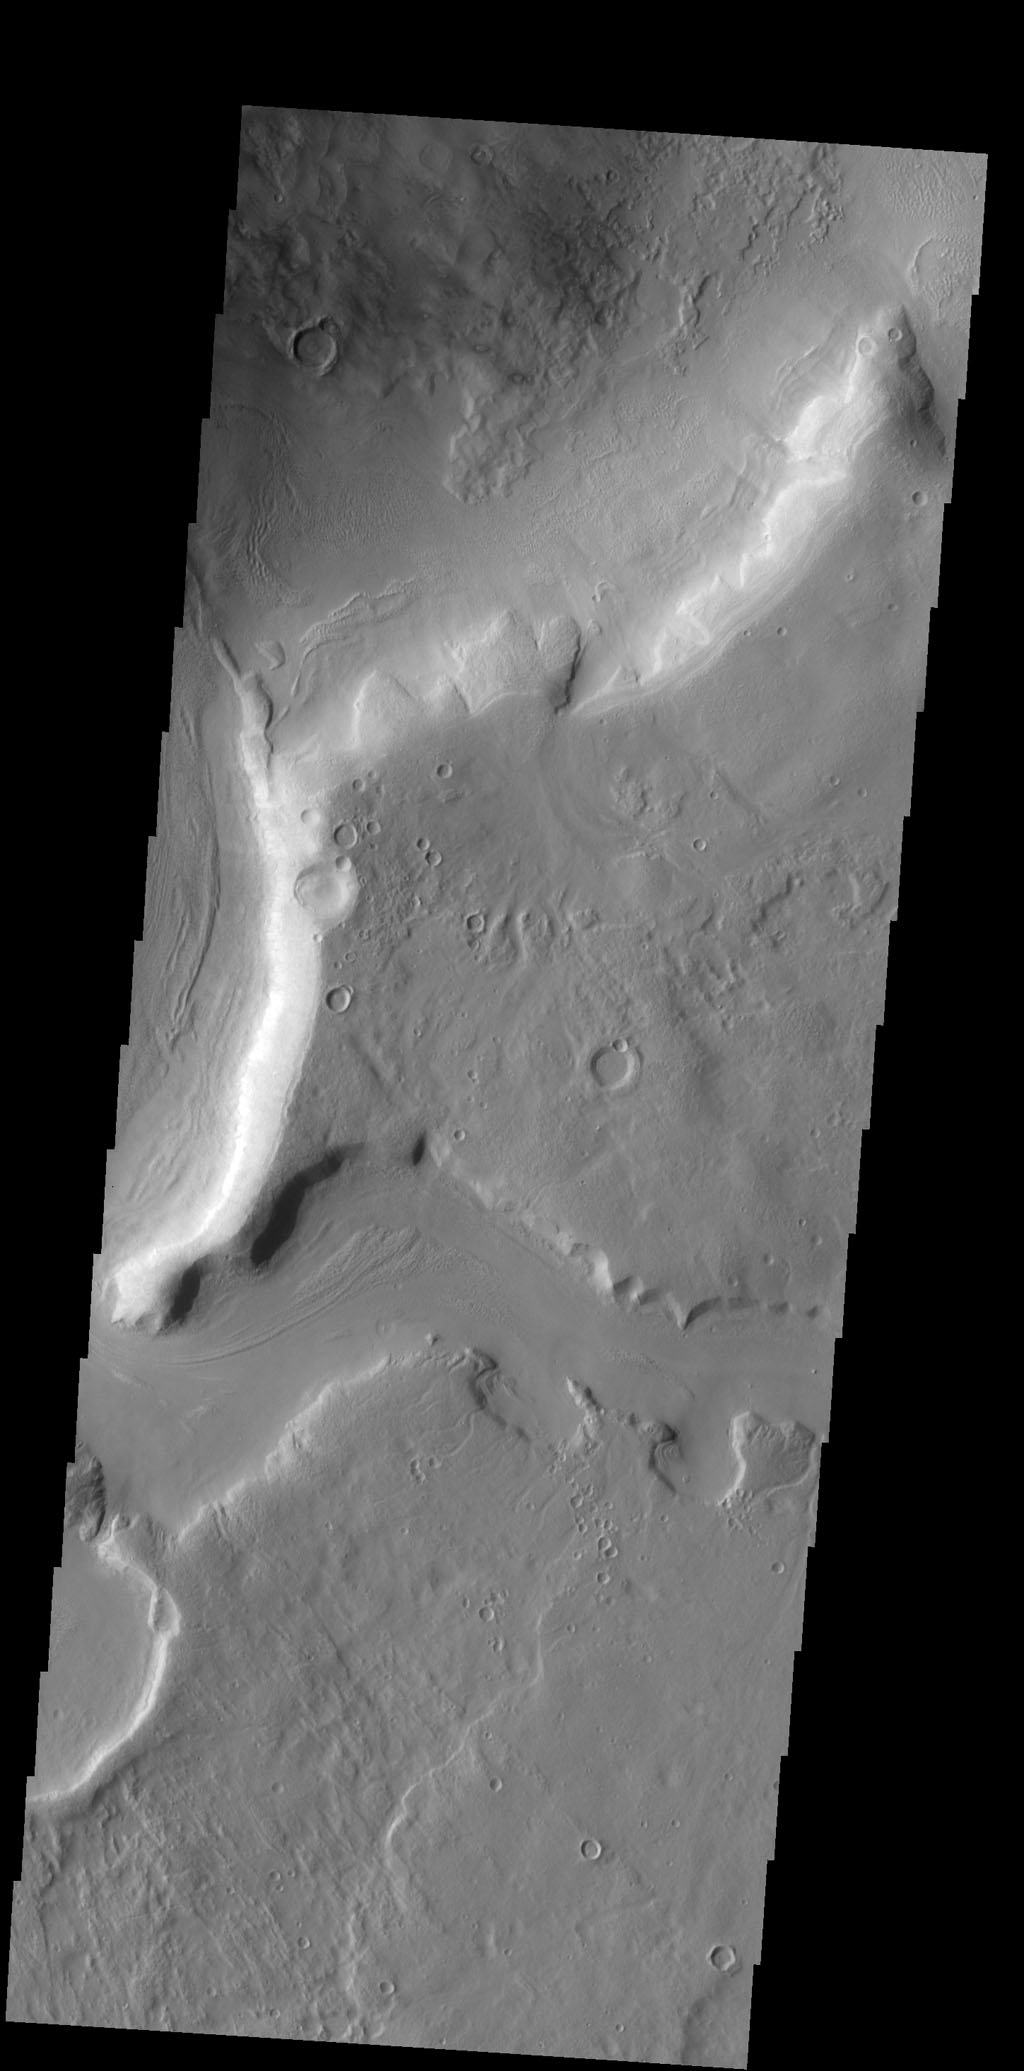 This image captured by NASA's 2001 Mars Odyssey spacecraft shows a portion of one of the numerous channels that dissect the northern margin of Arabia Terra.